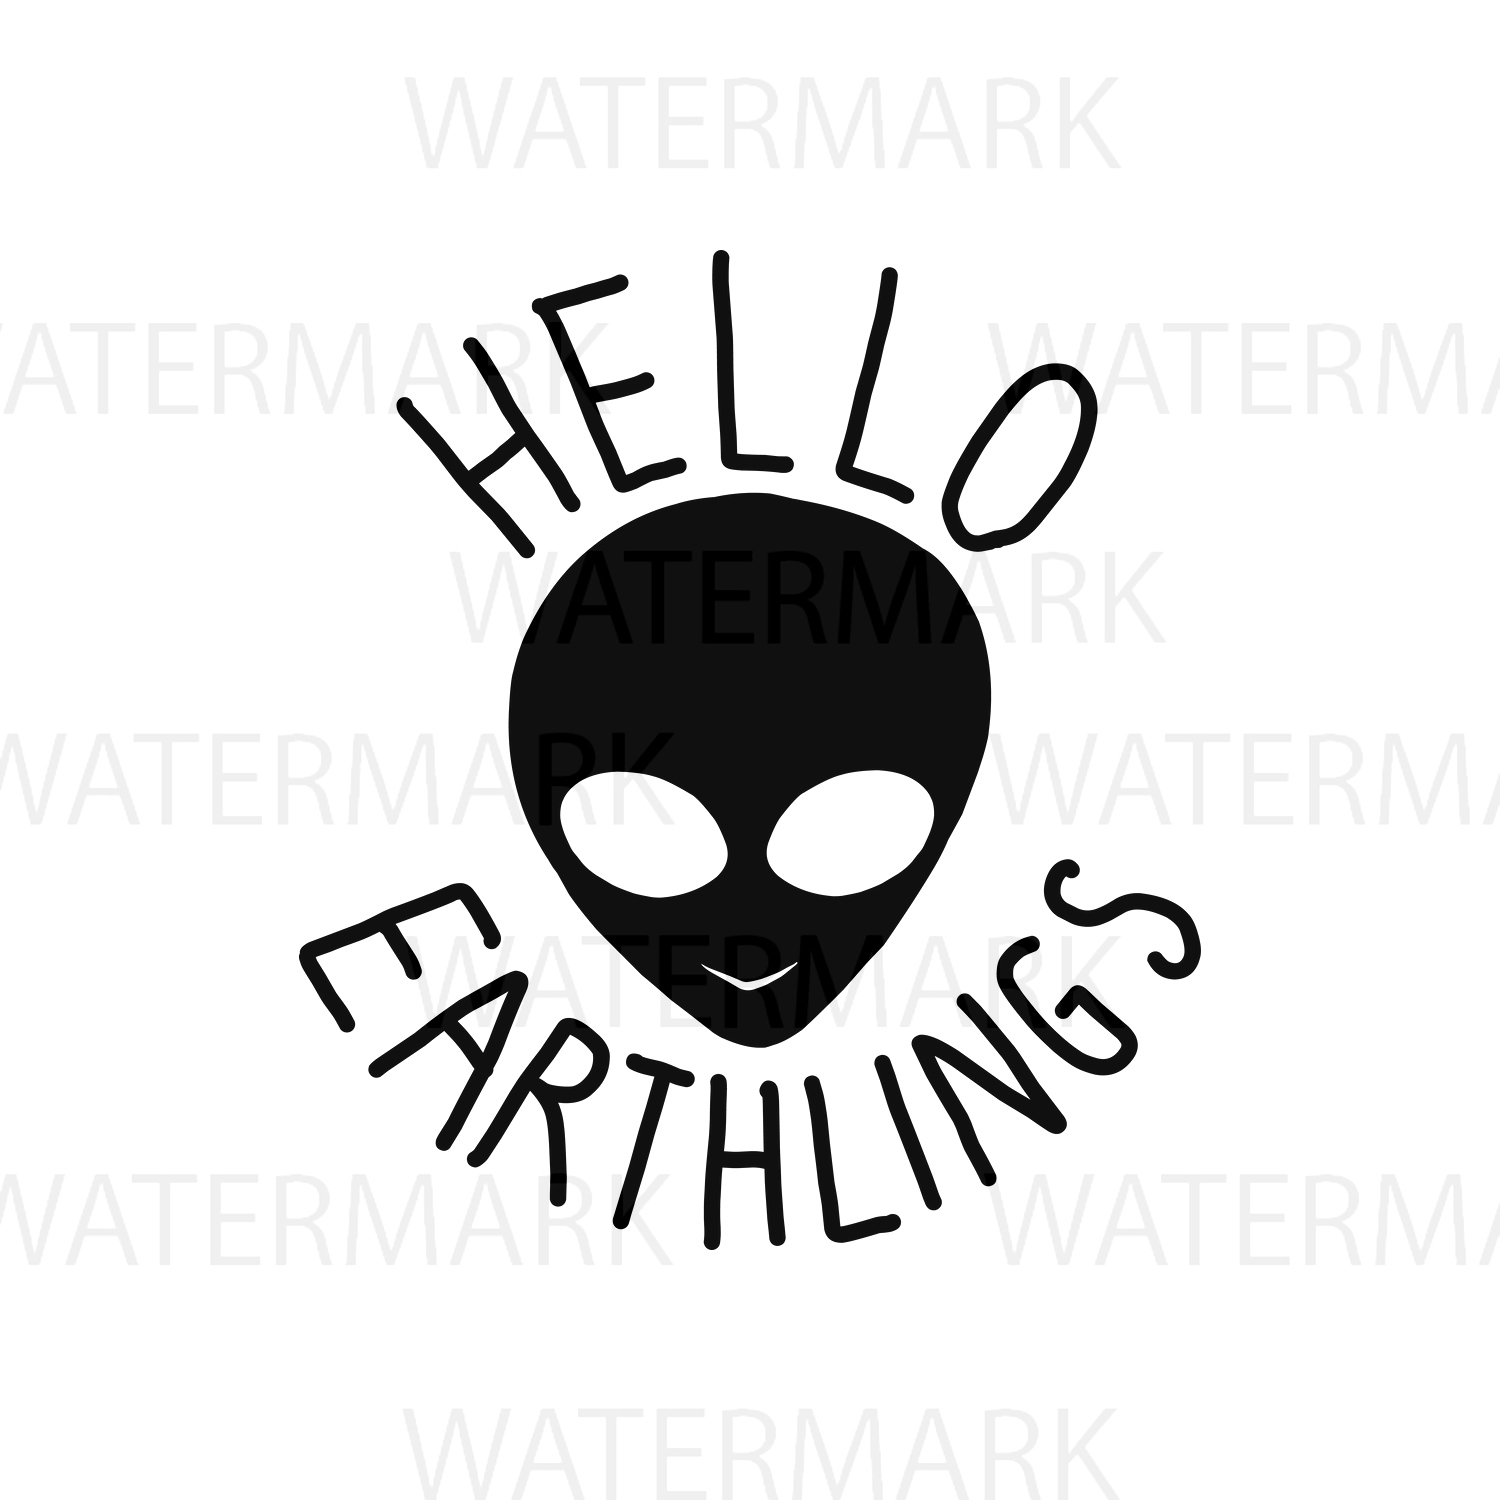 Alien Hello Earthlings - SVG/JPG/PNG Hand Drawing example image 1